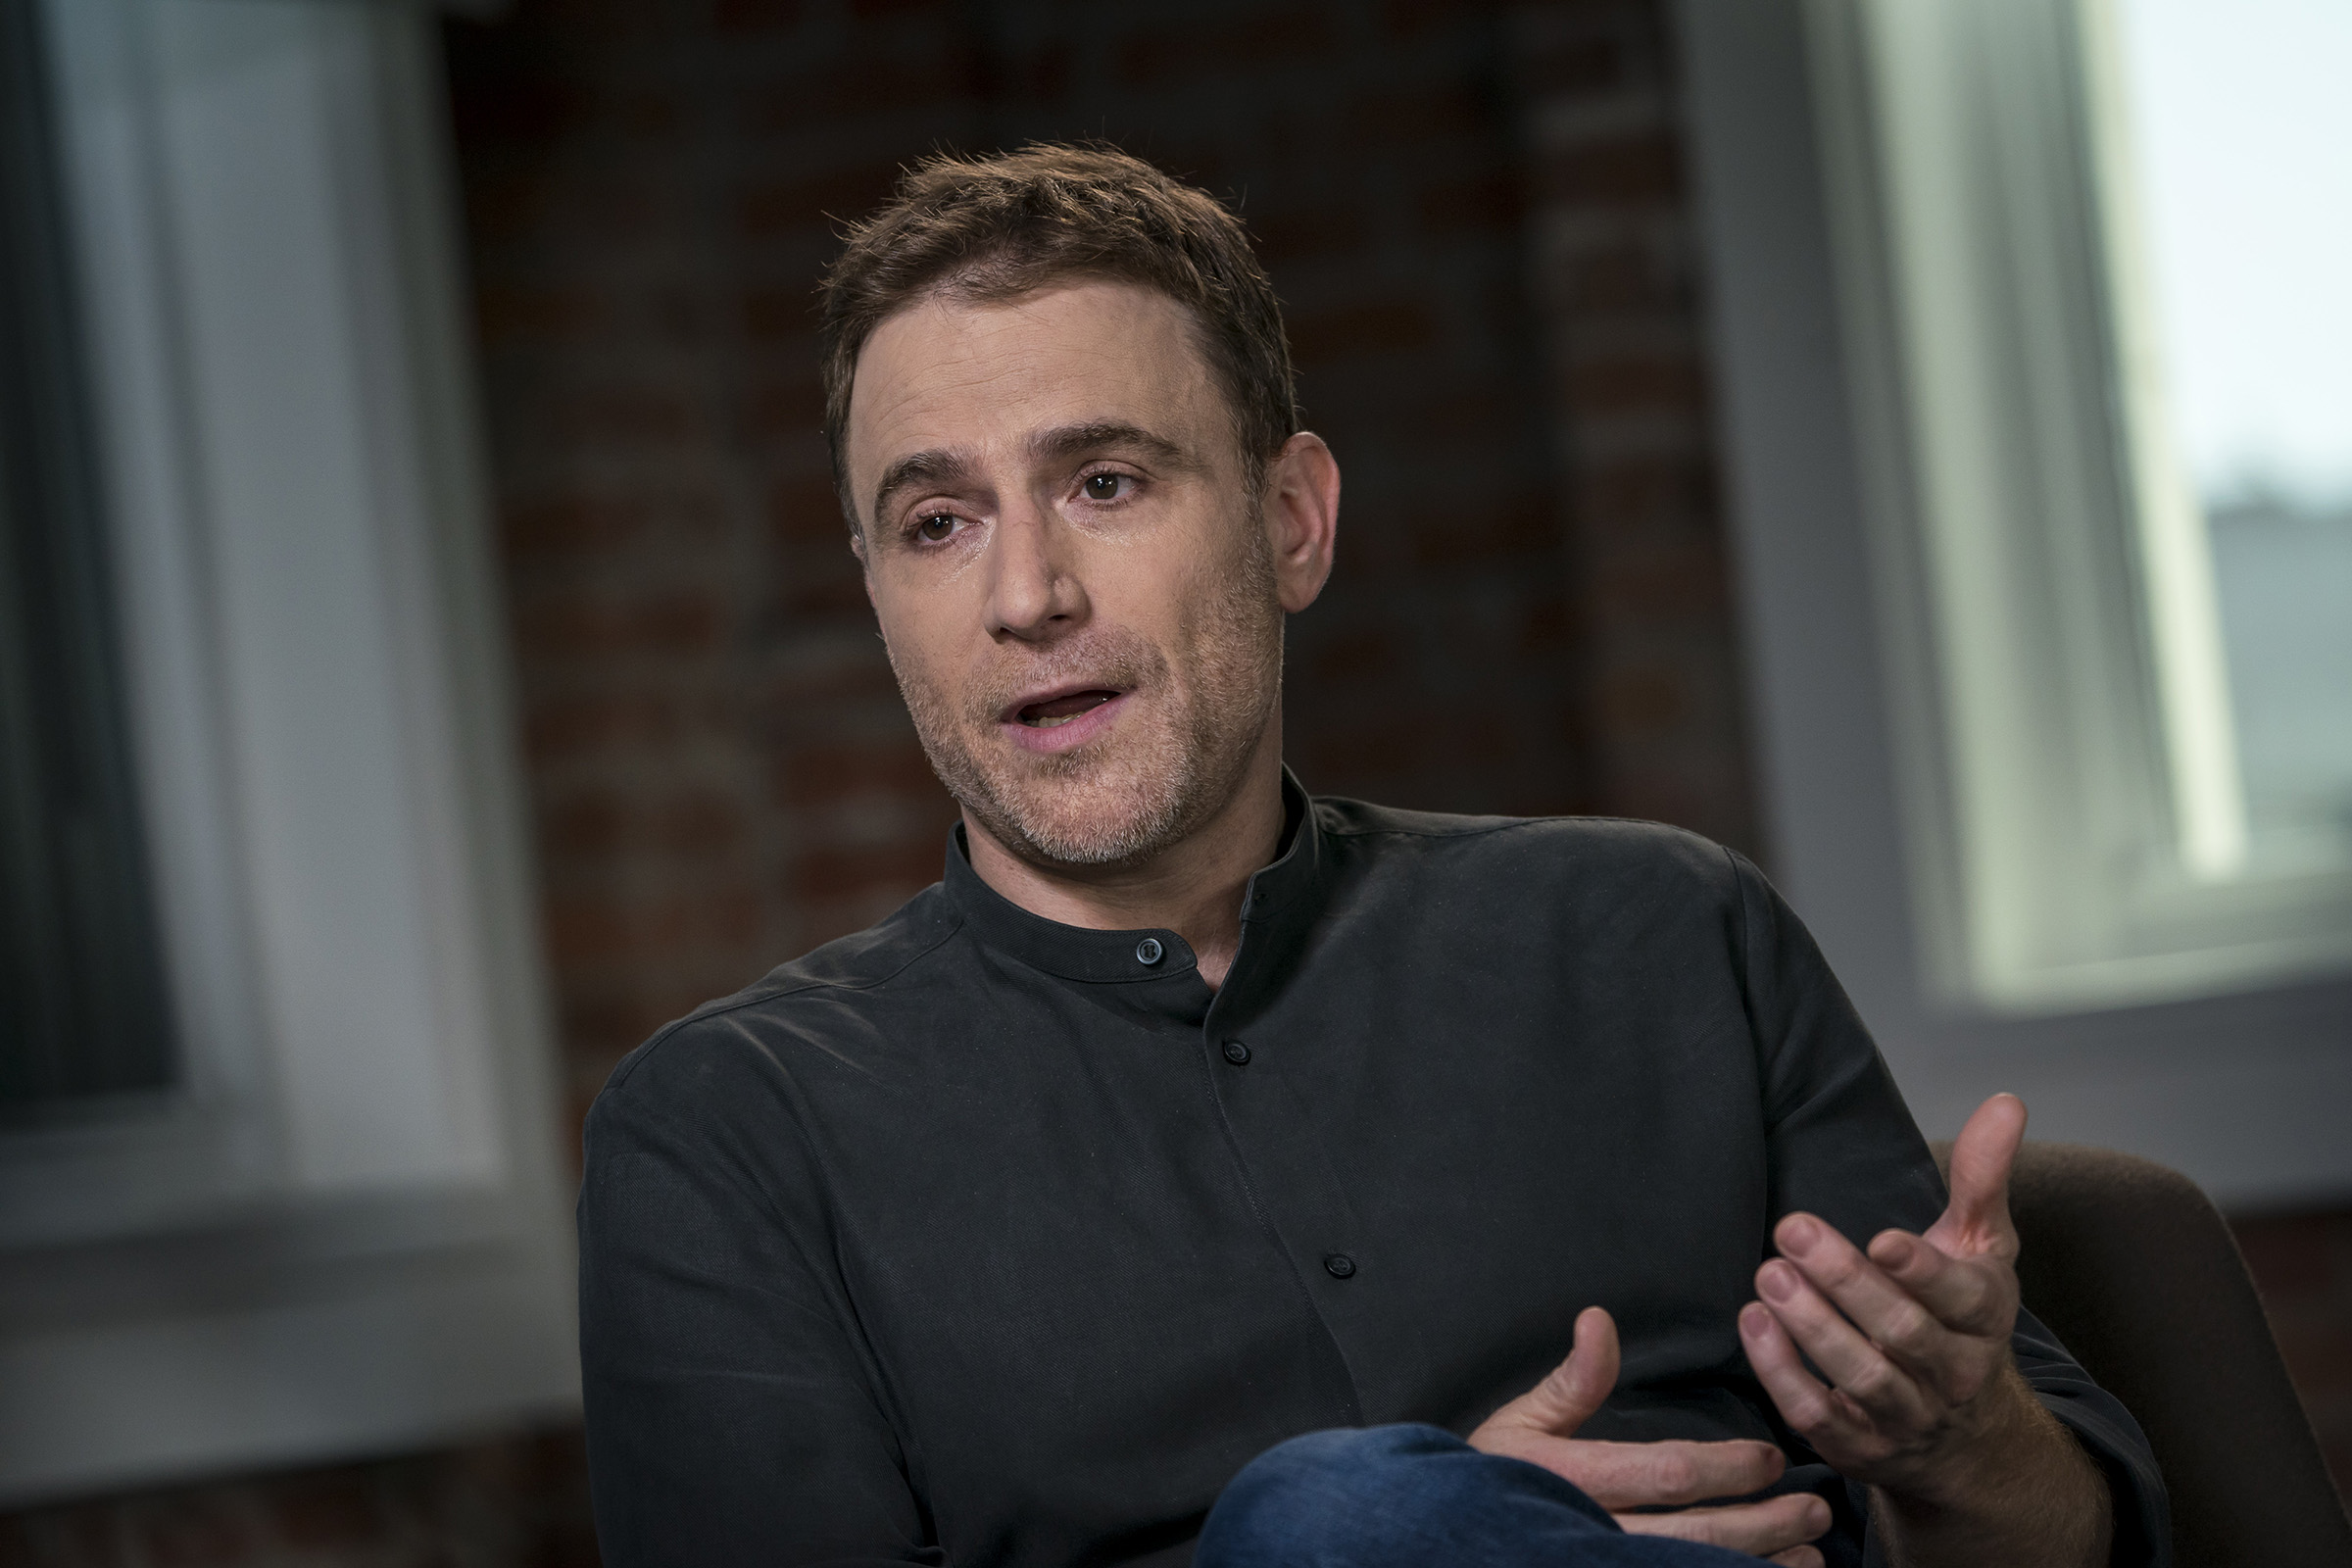 Stewart Butterfield, co-founder and chief executive officer of Slack Technologies Inc., speaks during a television interview in San Francisco on Aug. 3, 2018.